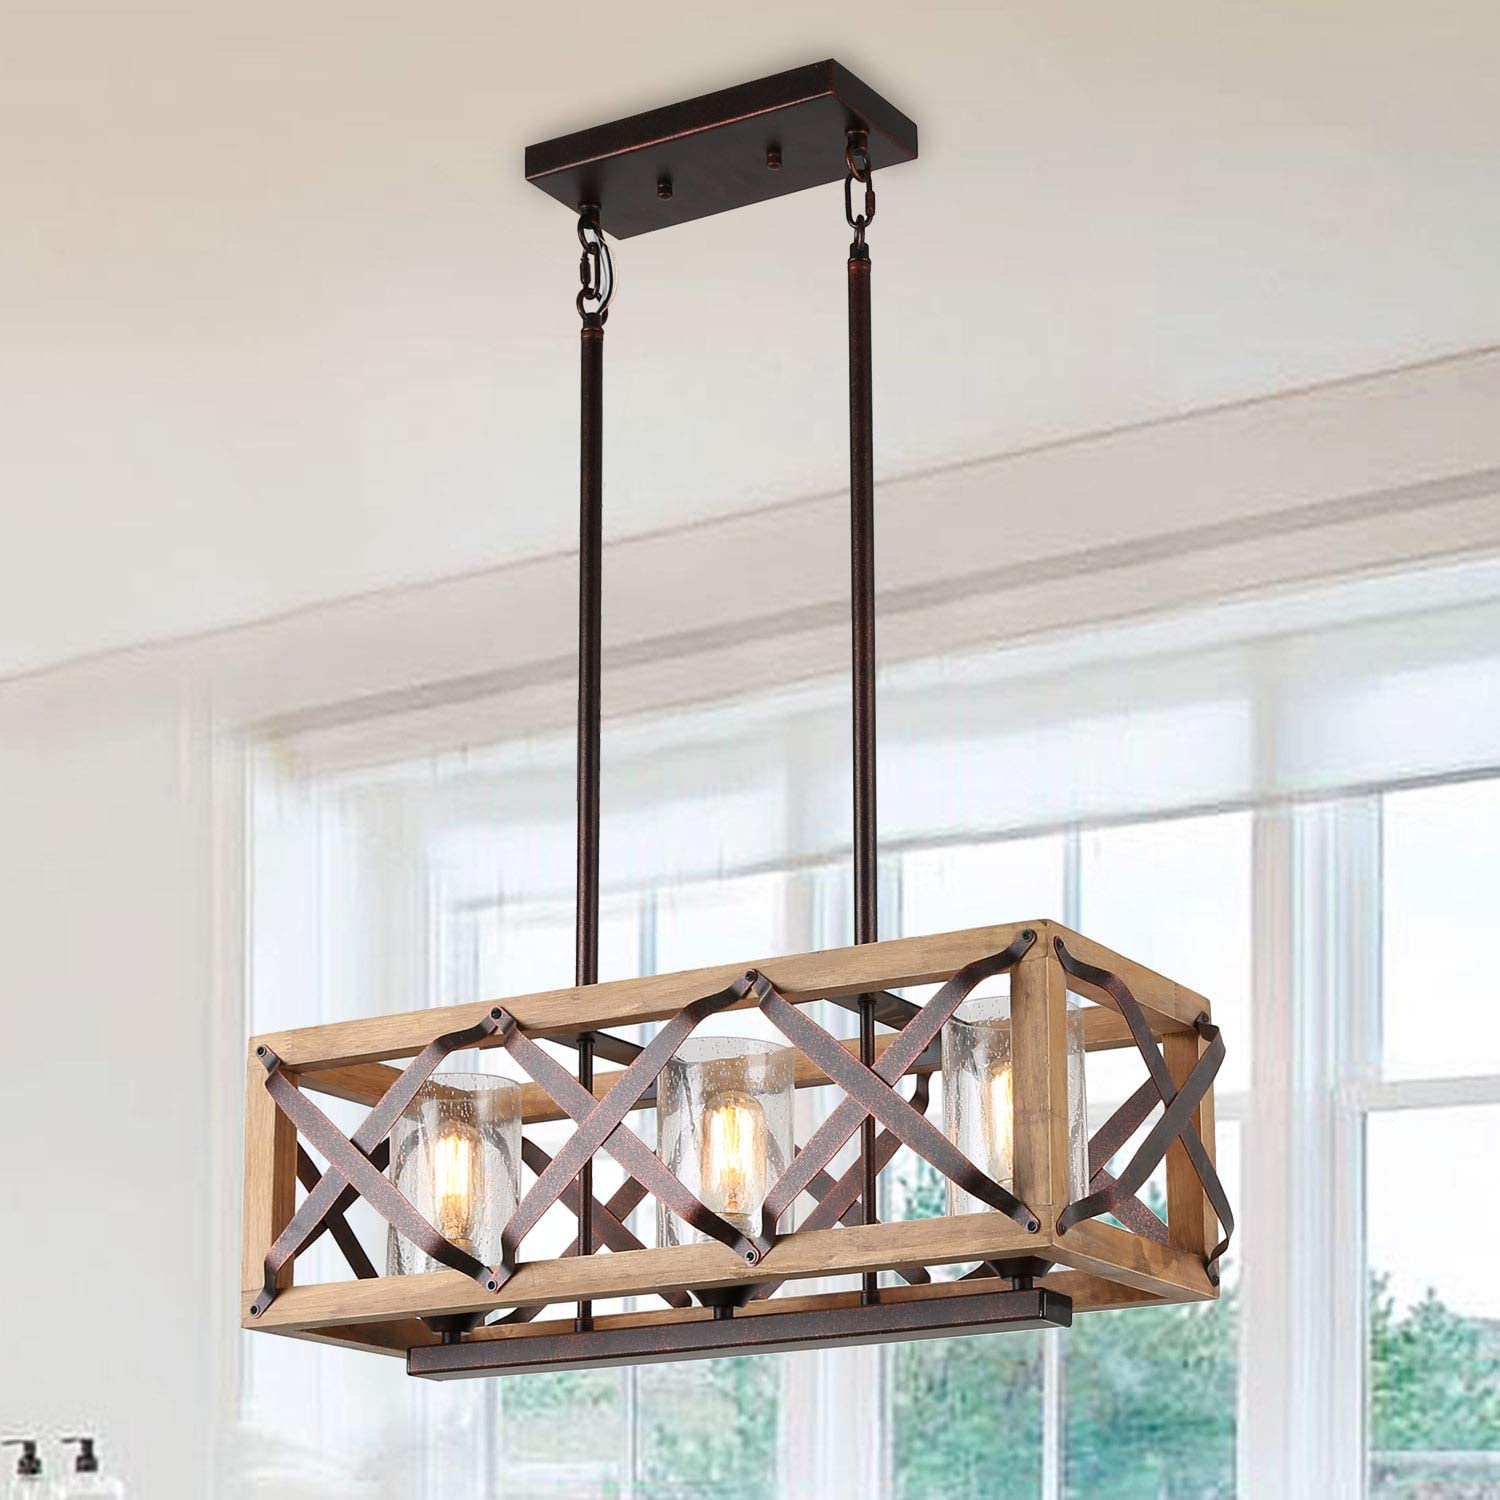 Eumyviv C0029 3-Lights Rectangle Wood Metal Pendant Lamp Light Fixture with Bubble Glass Shade Black Finished Retro Rustic Vintage Industrial Edison Ceiling Lamp Linear Chandeliers